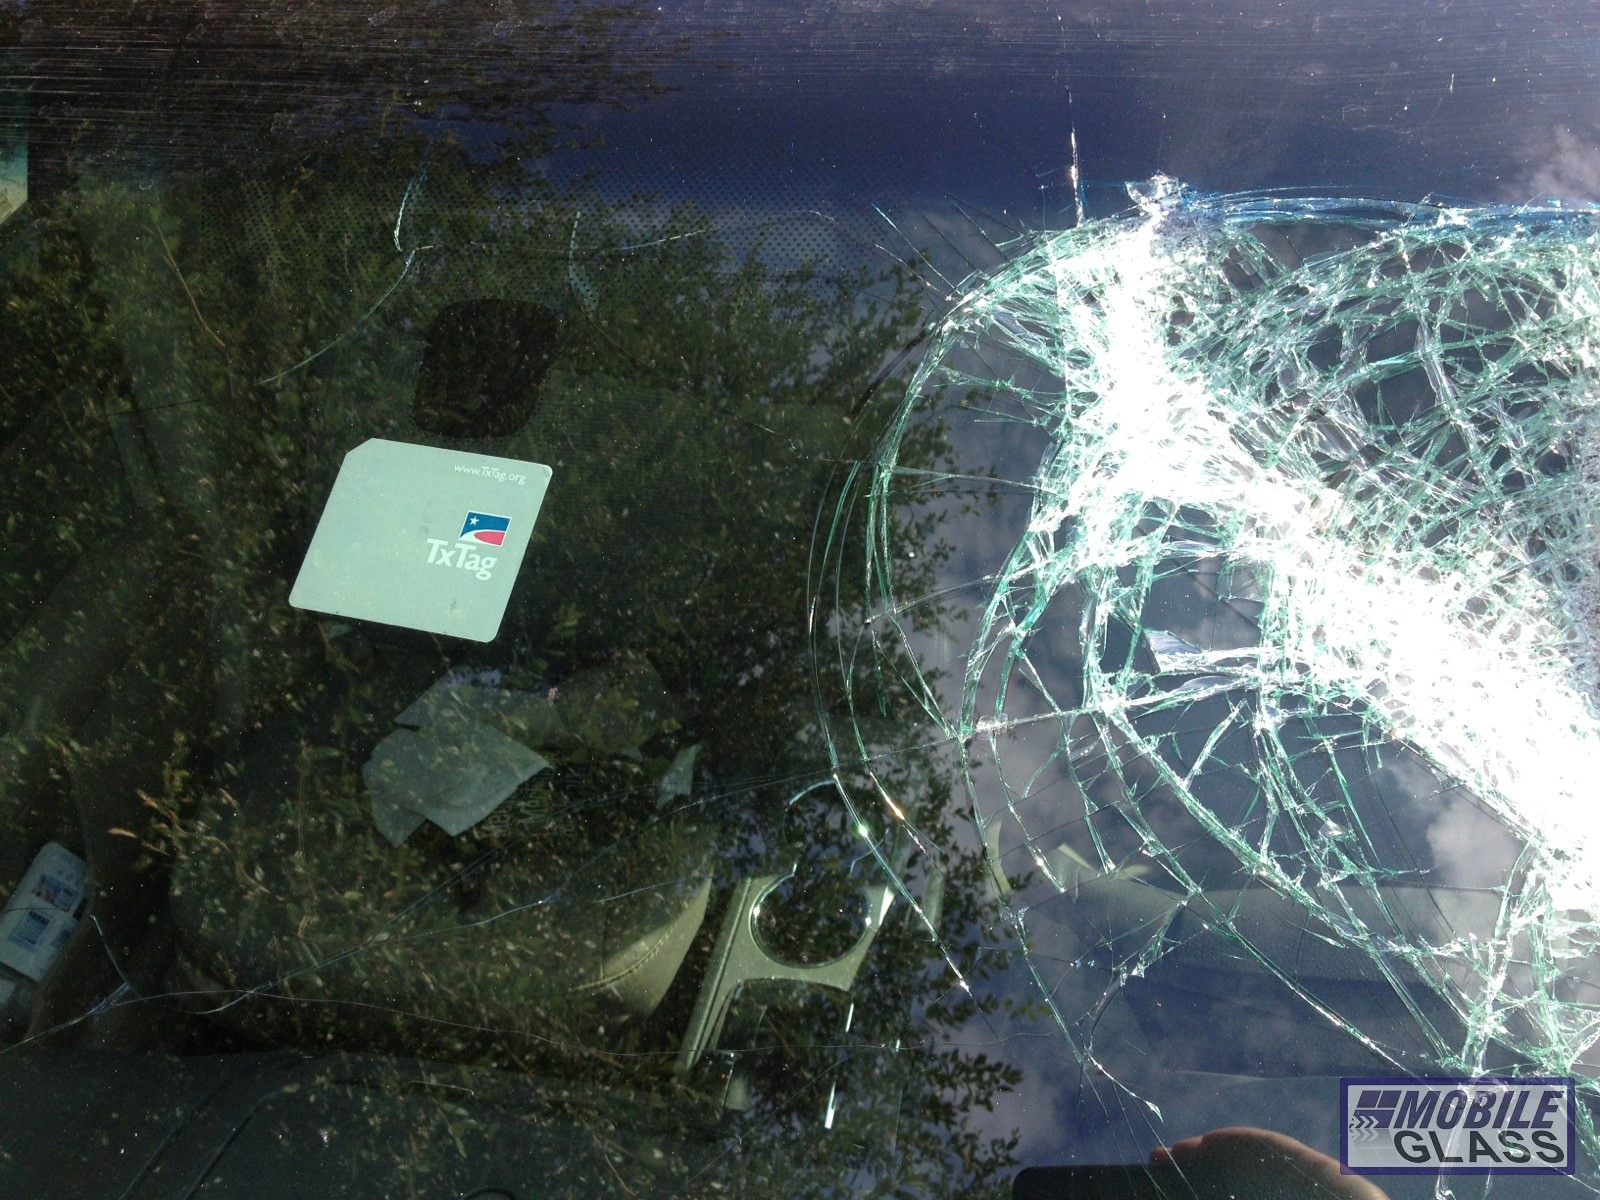 Mobile Windshield Replacement in Kyle by Austin Mobile Glass